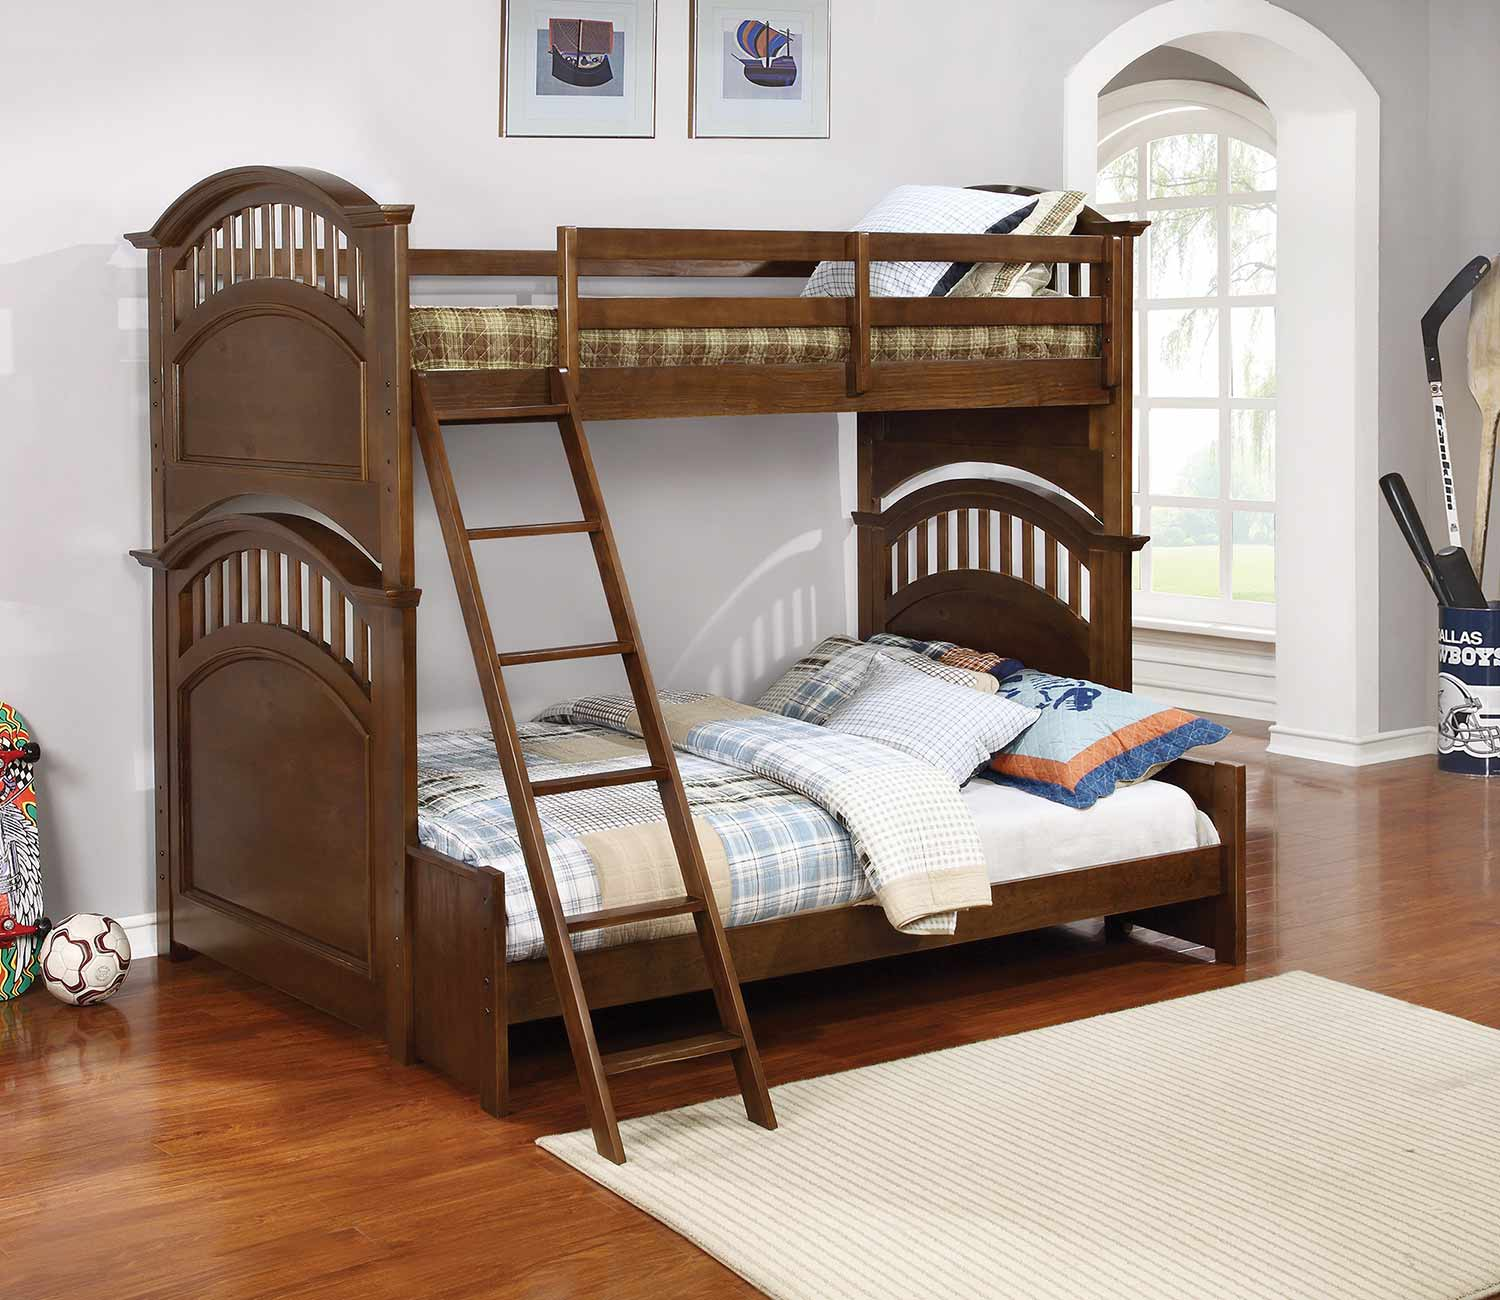 Coaster Halsted Twin/Full Size Bunk Bed - Walnut